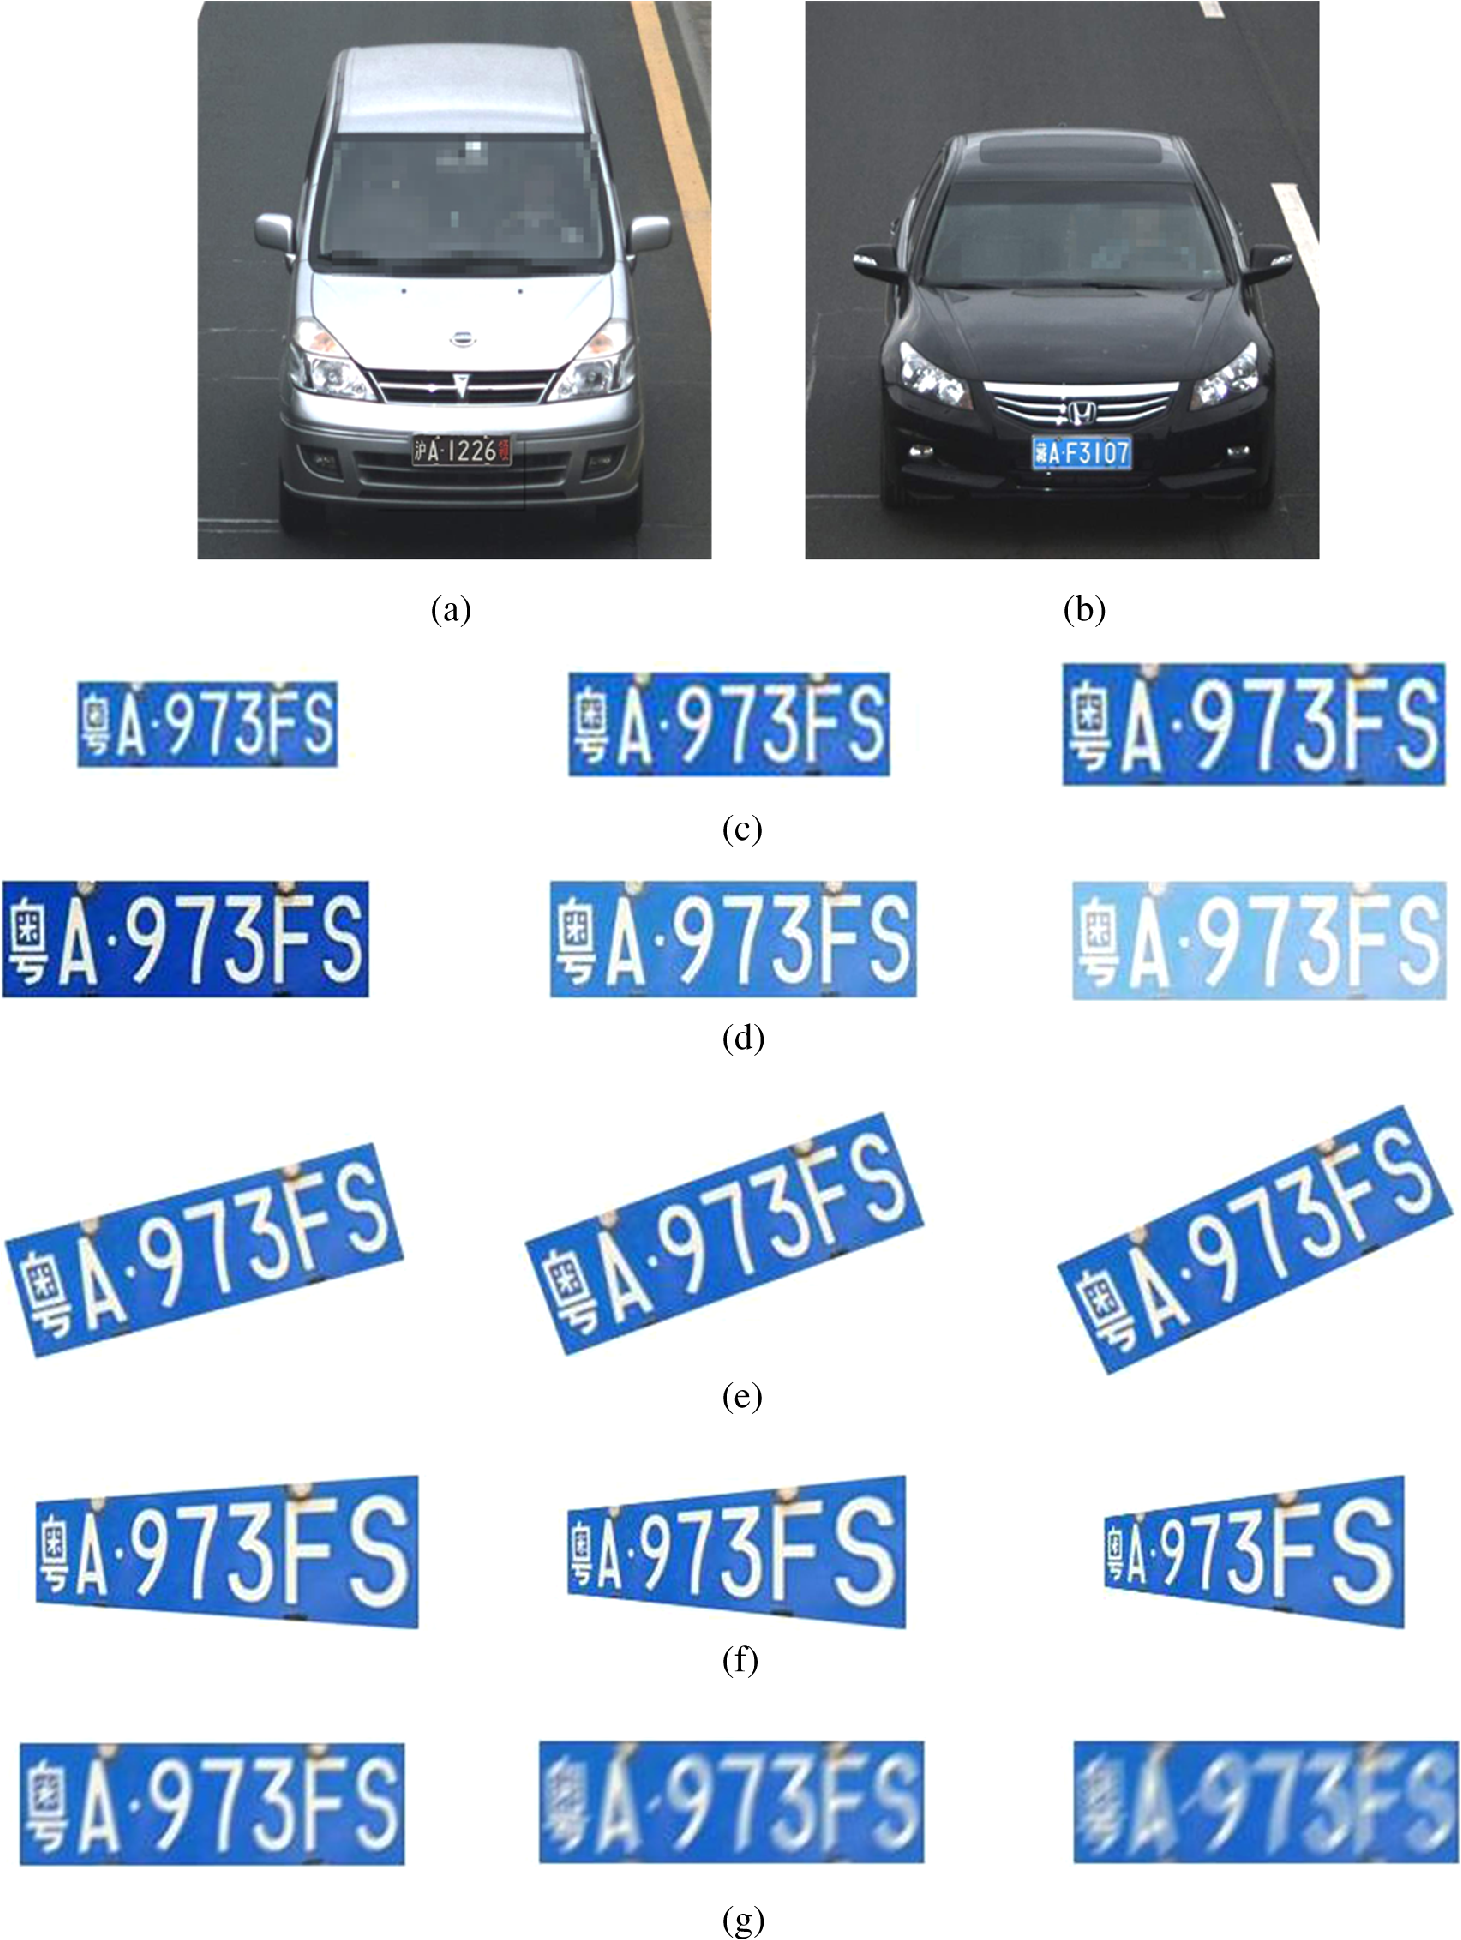 Chinese license plate image database building methodology